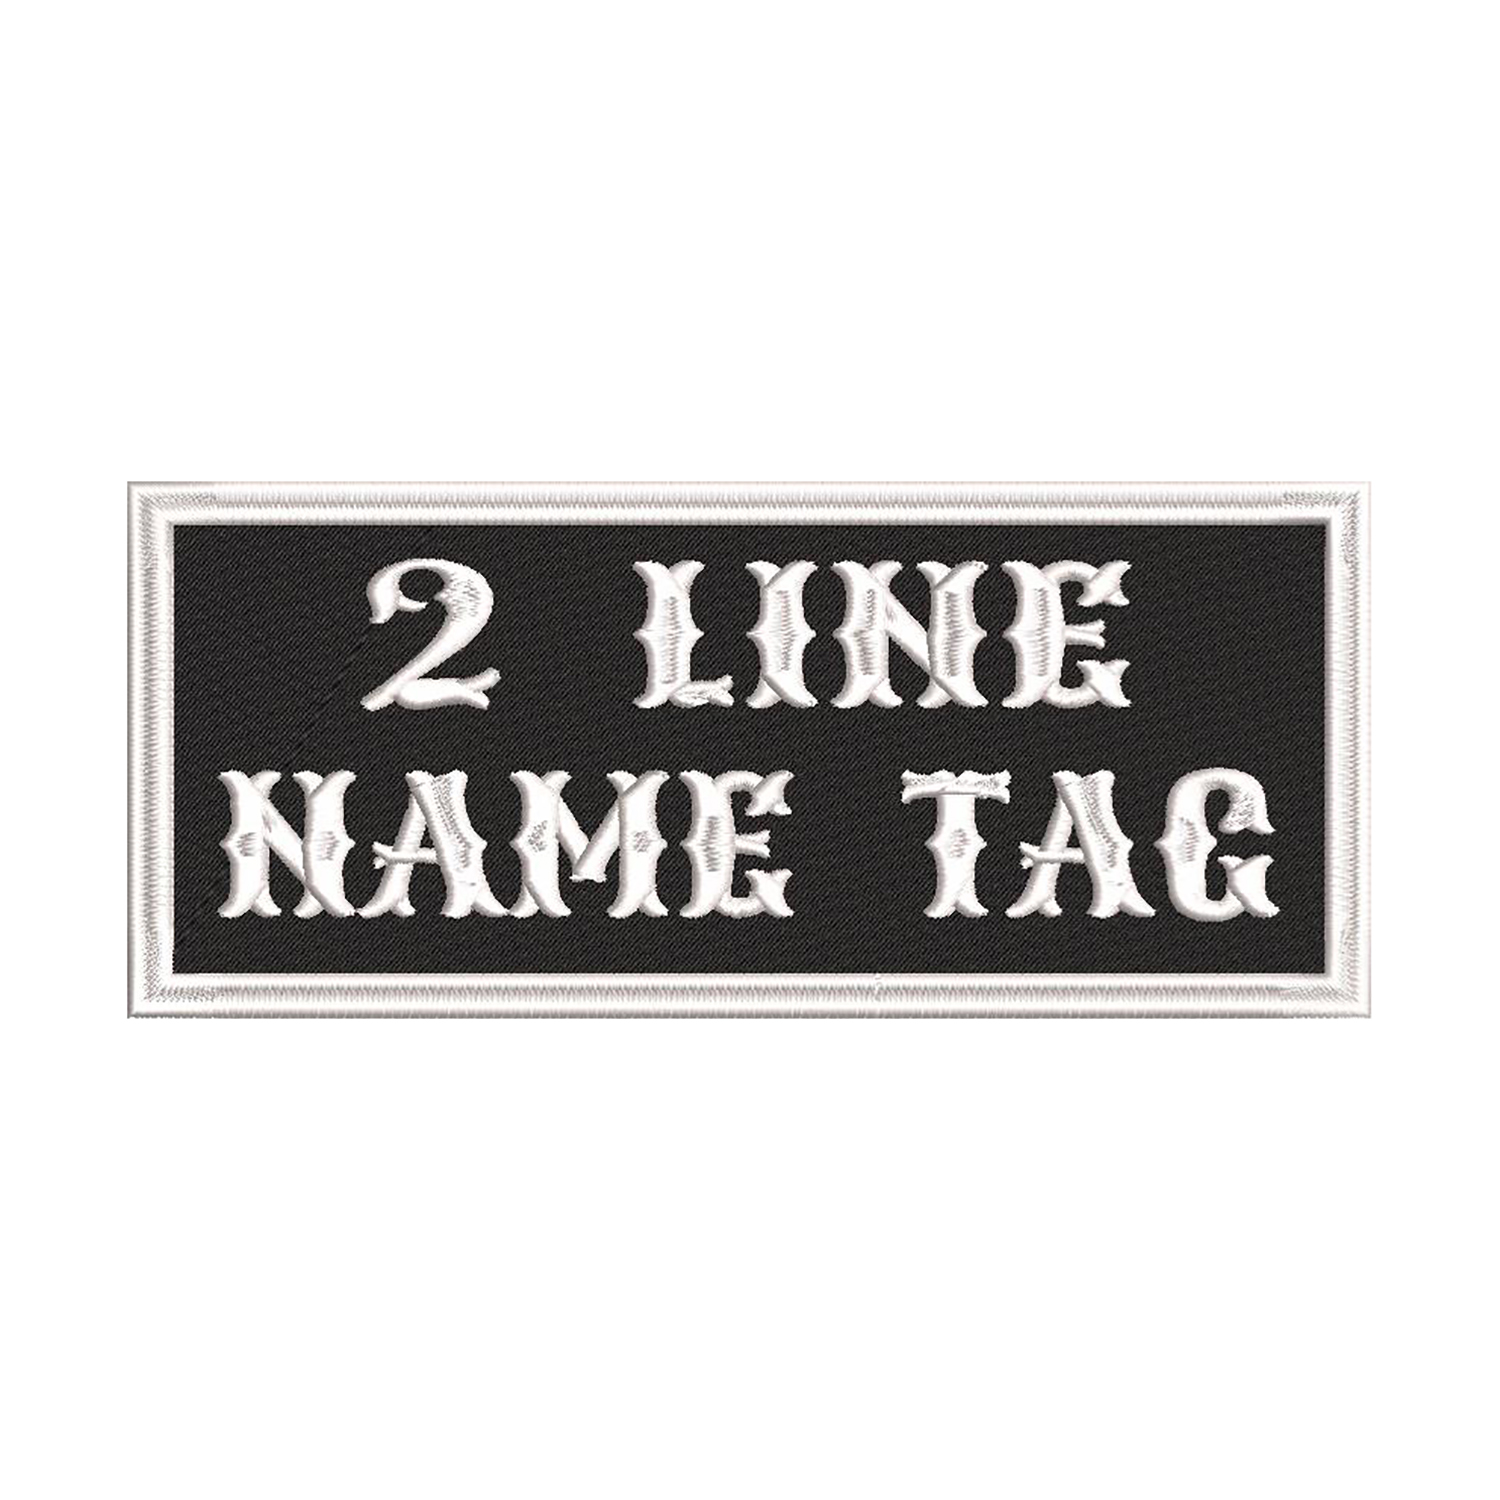 3.5 x 1.5 Custom Embroidered Name Tag Biker Patch